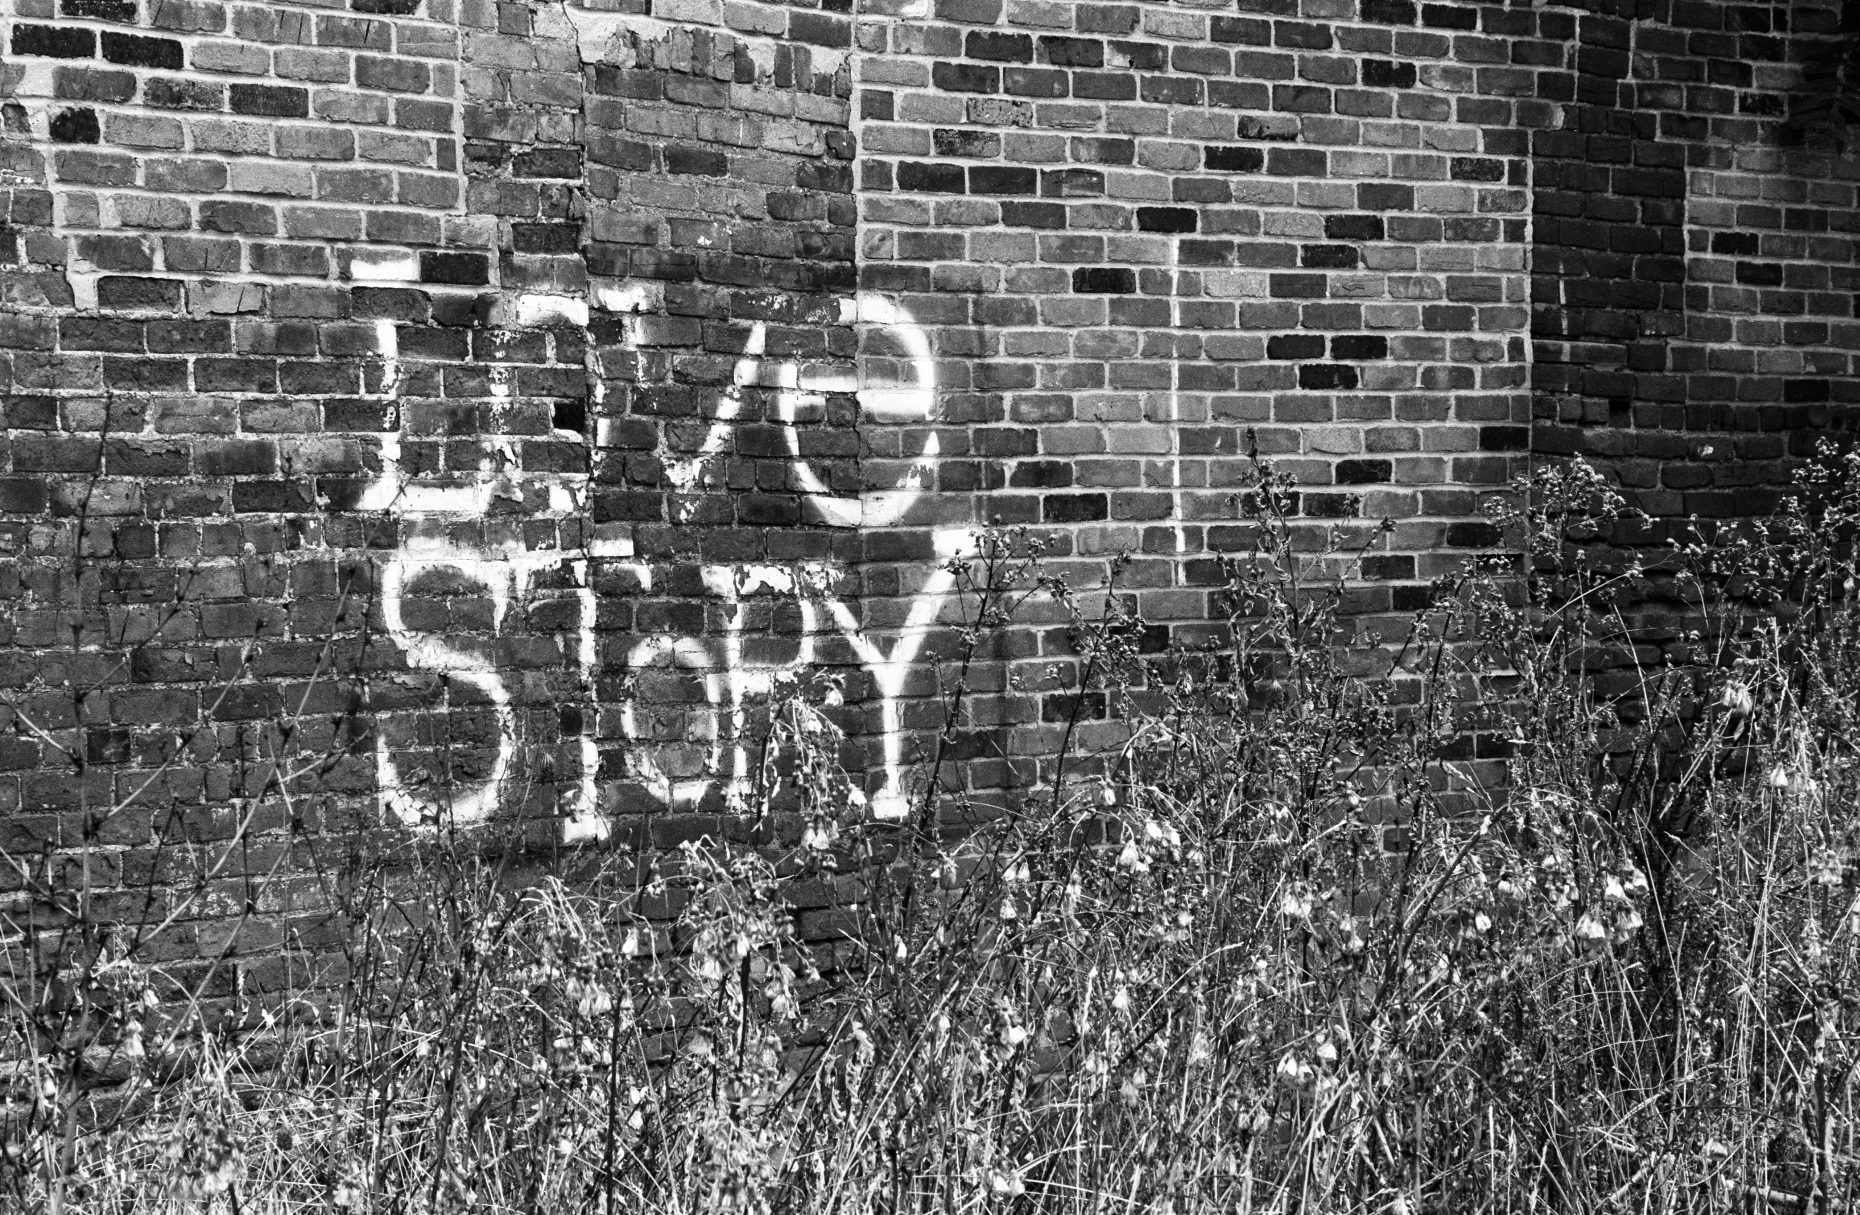 Love Story Graffiti - Detroit